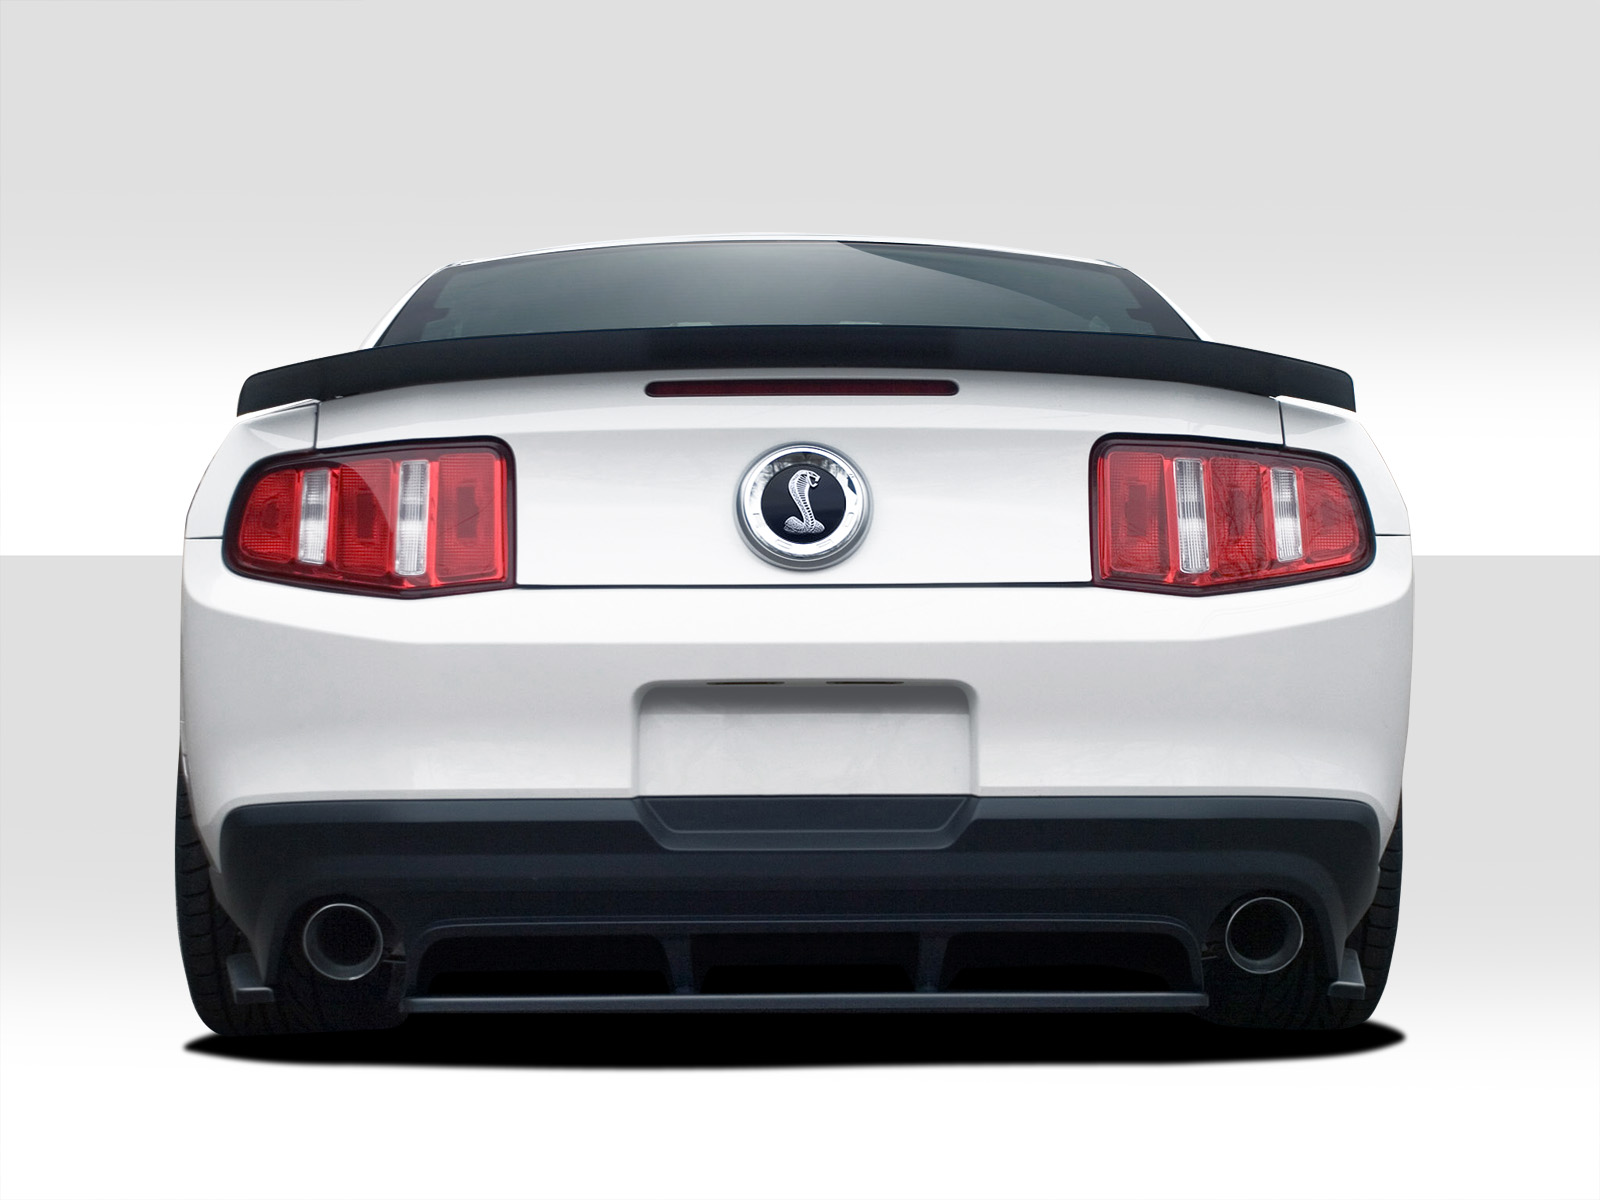 10 12 ford mustang r500 duraflex rear bumper diffuser body. Black Bedroom Furniture Sets. Home Design Ideas